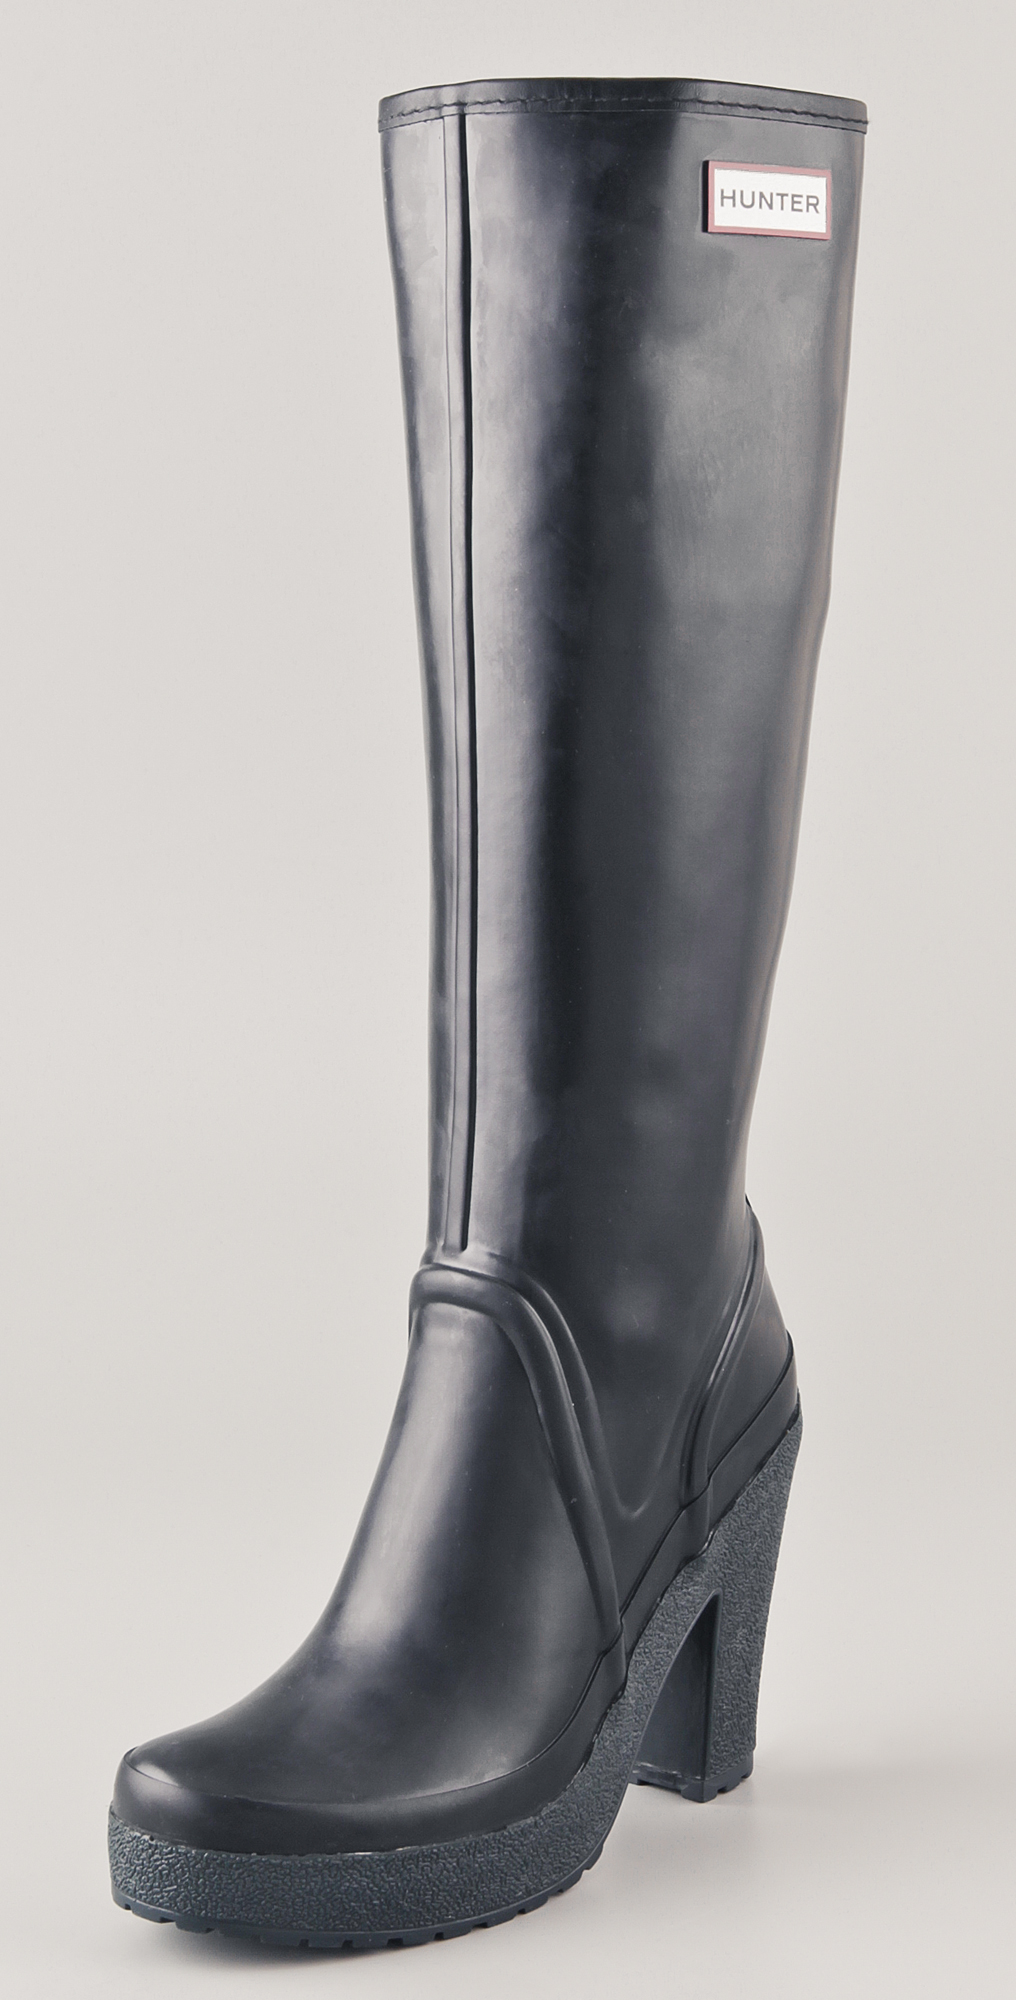 1b42ad9e3 Hunter Boots Lonny High Heel Tall Boots | SHOPBOP